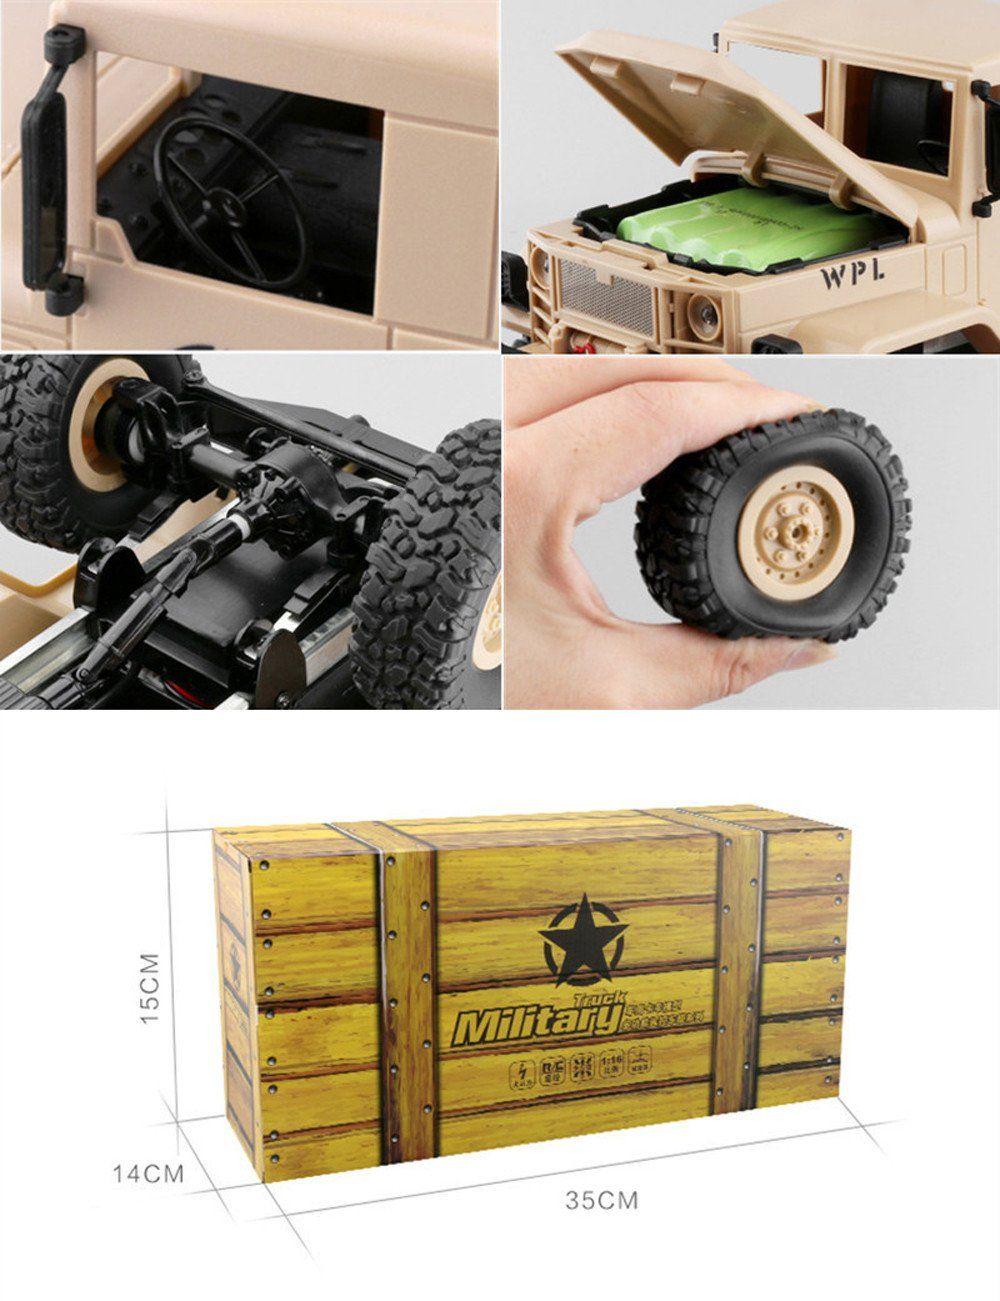 RC CarWPLB14 1/16 Toy Grade 4WD RC Military Truck Wireless